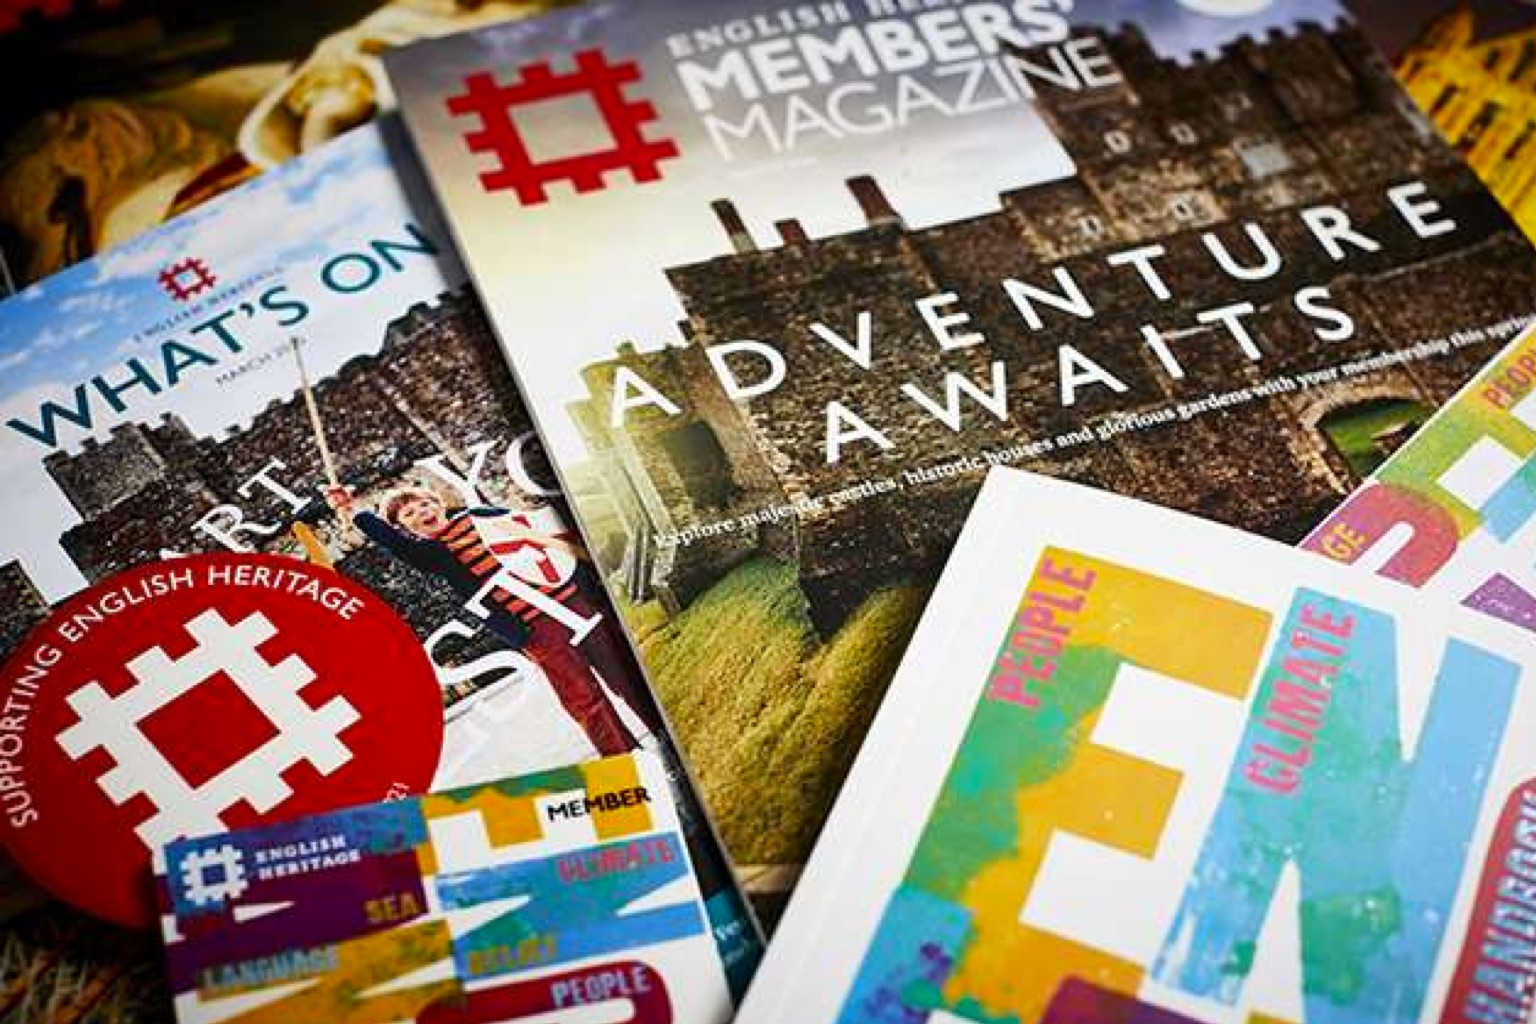 Charity Gifts from English Heritage